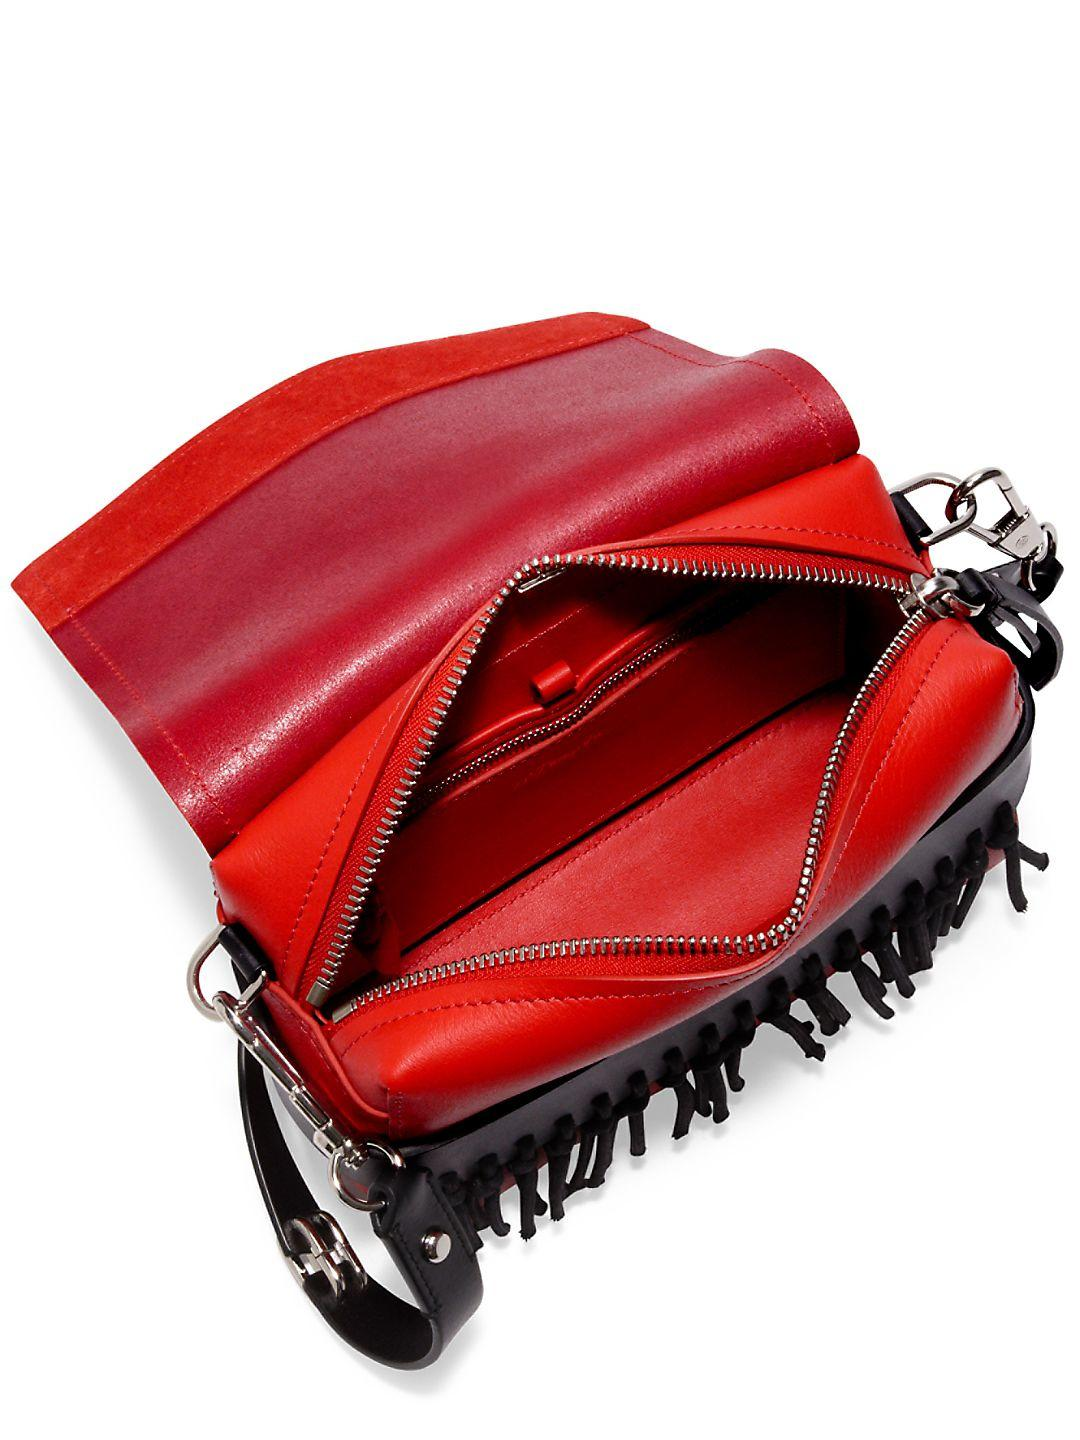 3.1 Phillip Lim Leather Bianca Rosso Small Flap Crossbody W/fringe in Red (Black)